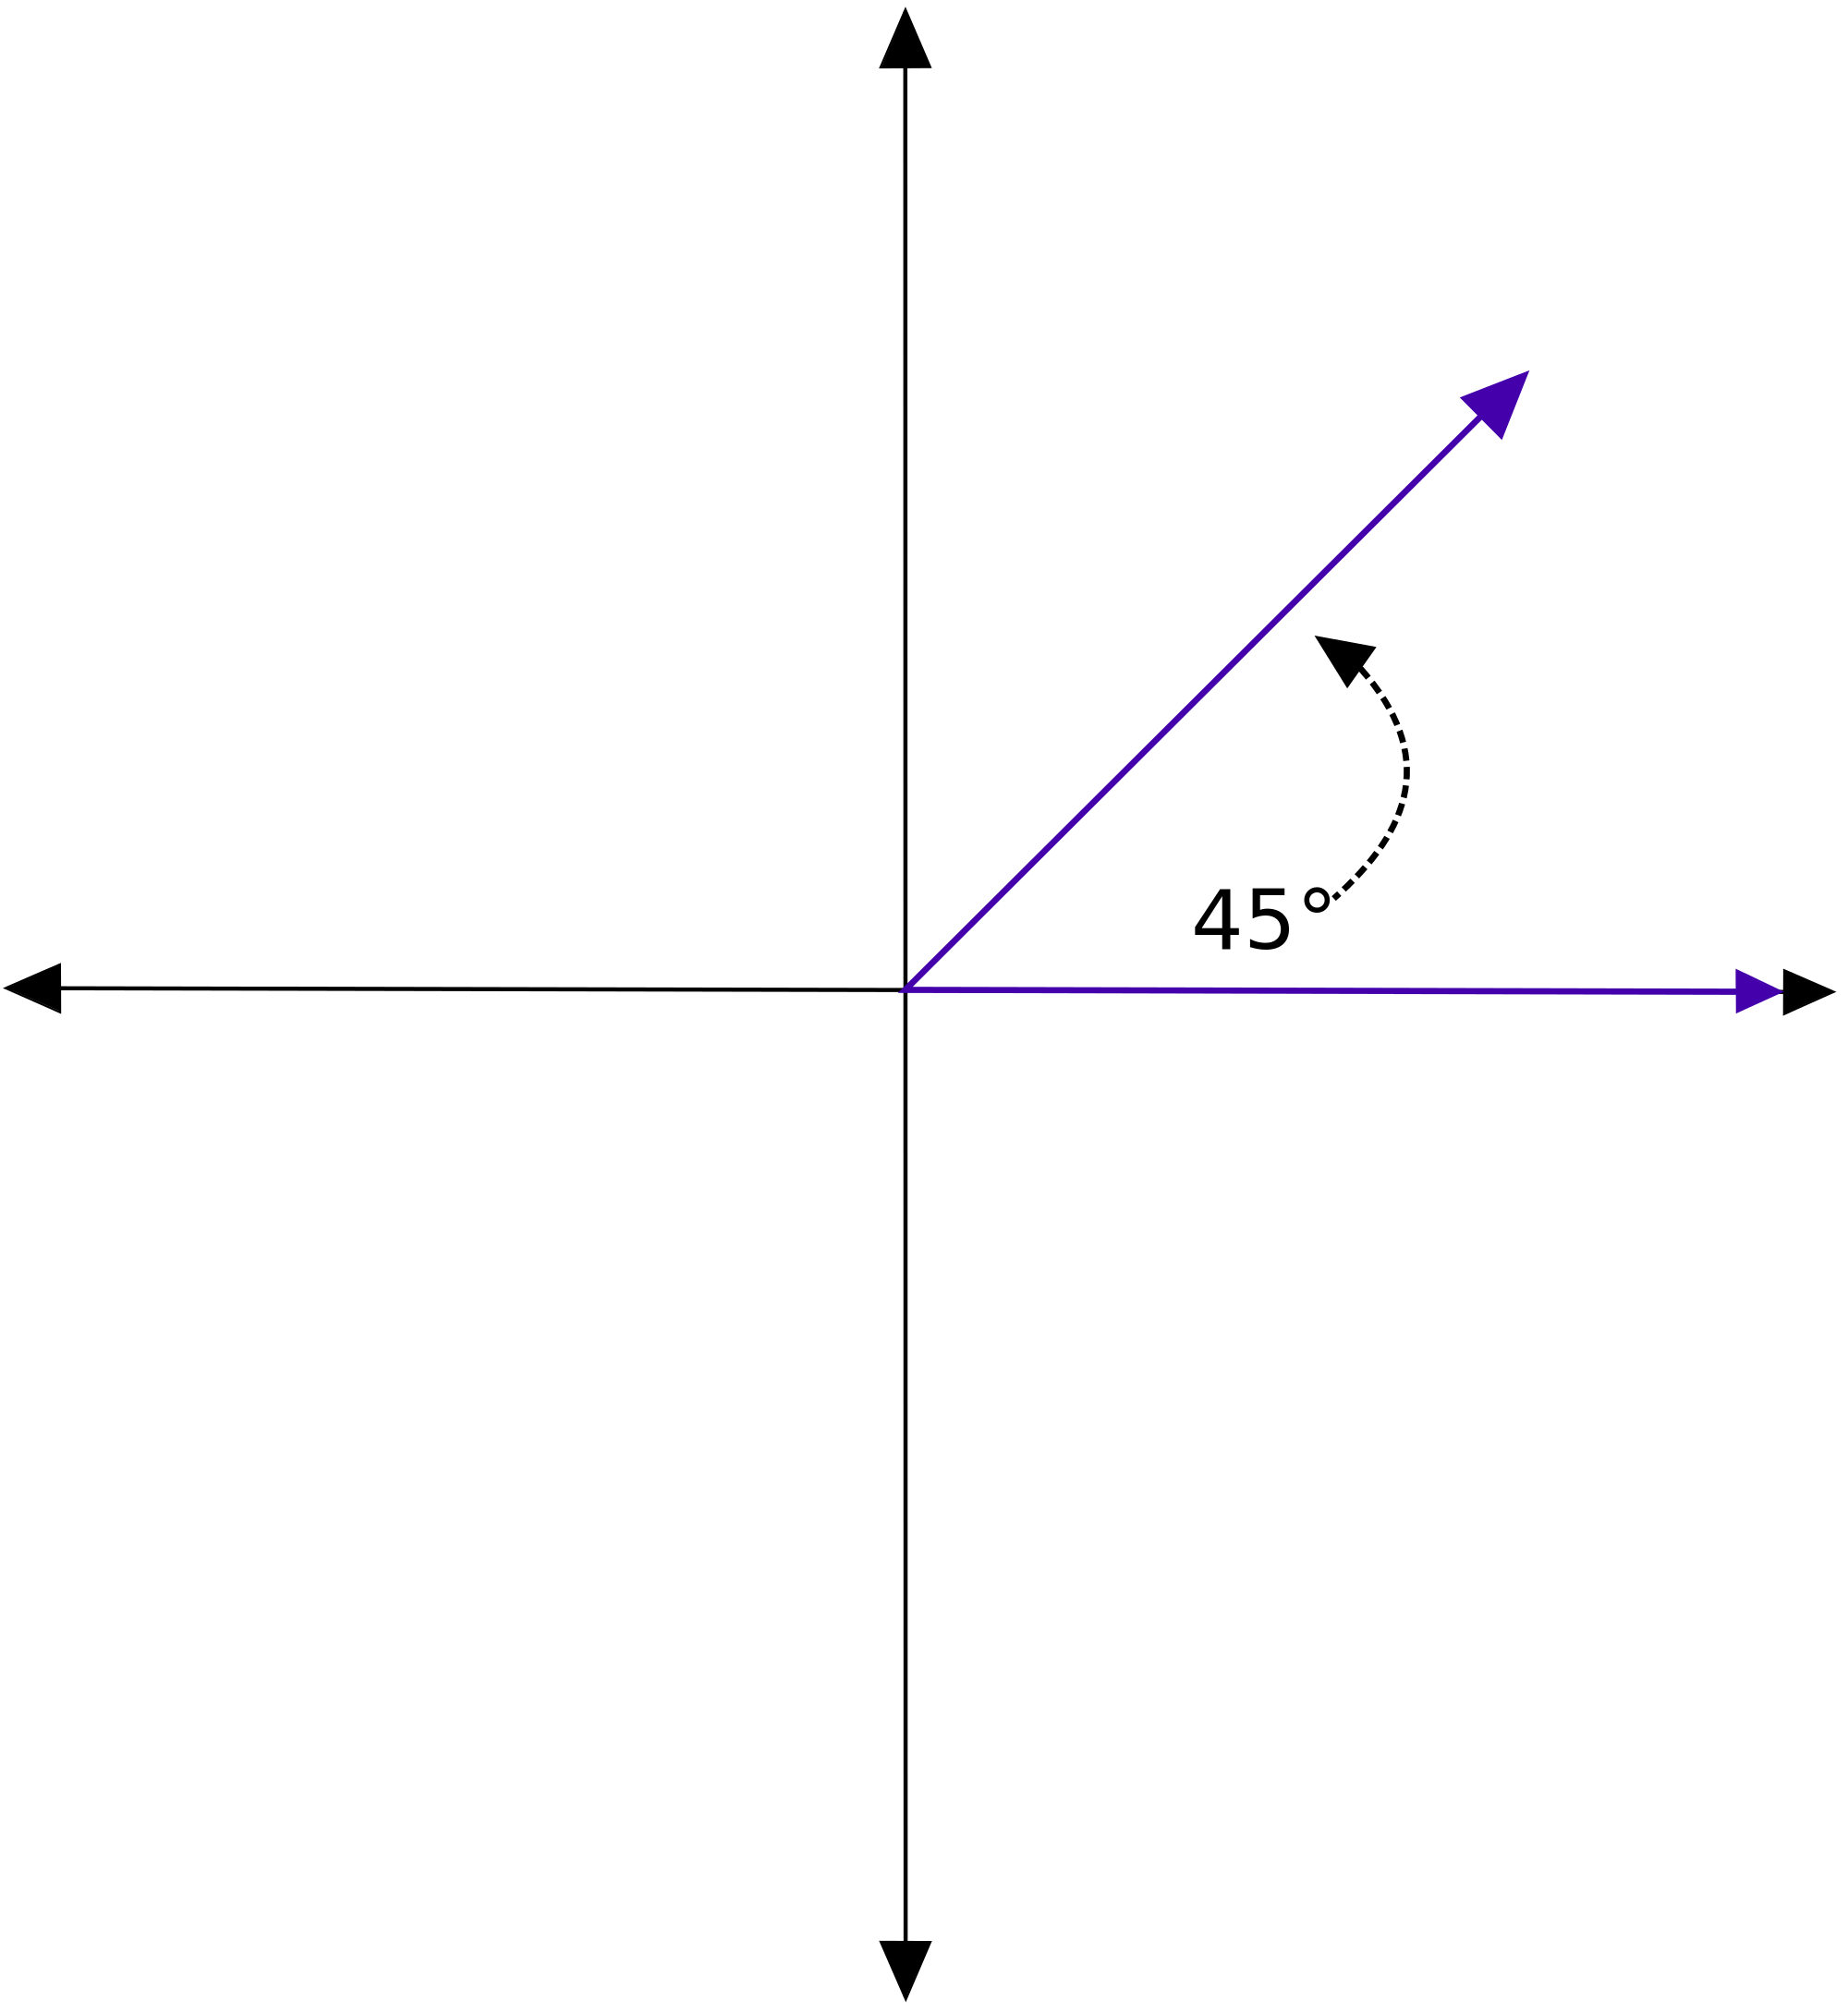 File:45 degree standard position.svg - Wikimedia Commons